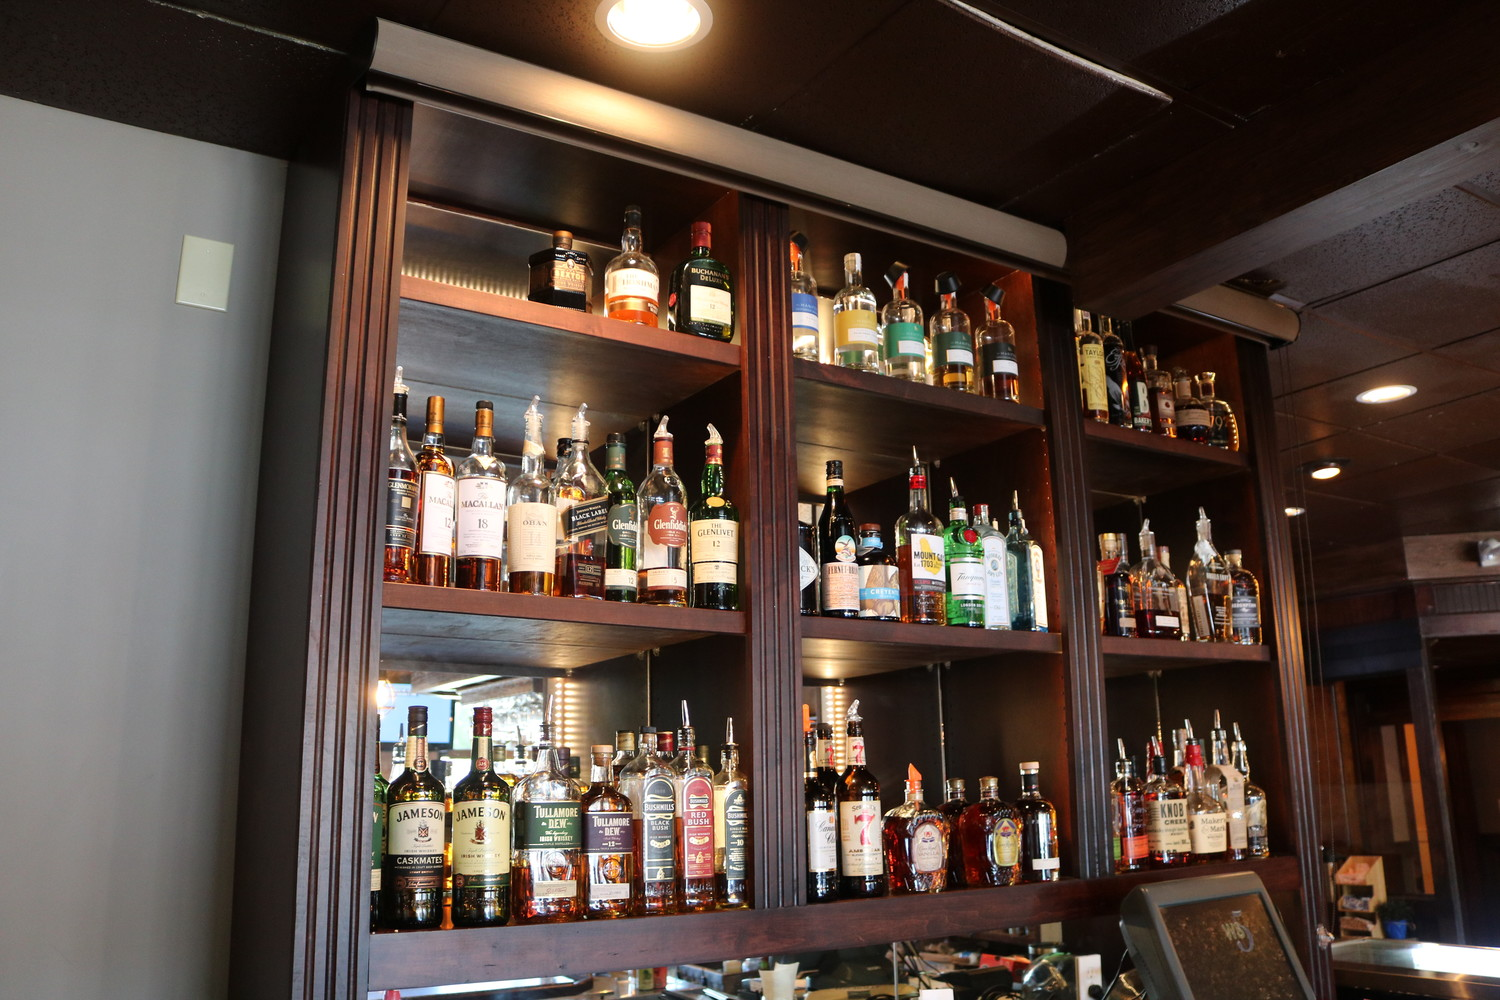 Guests can enjoy several liquor brands at Mulligan's Pub and make their choice by scanning a display featuring an assortment of options.